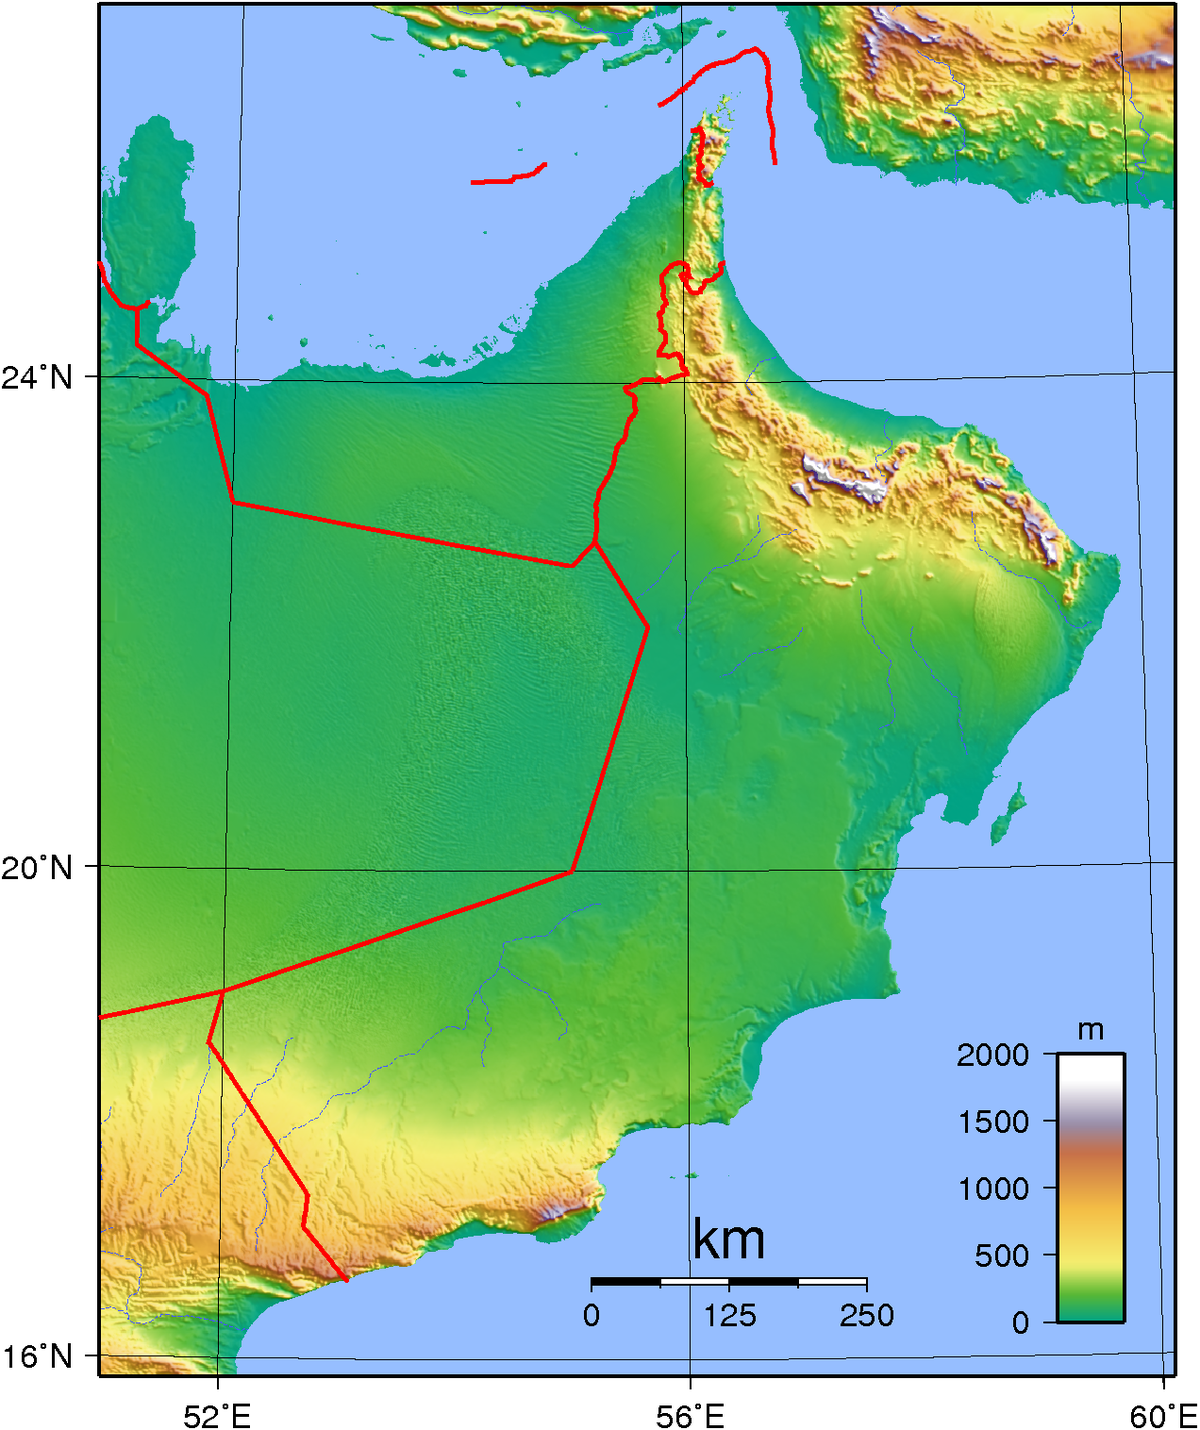 Geography Of Oman Wikipedia - Oman in world map